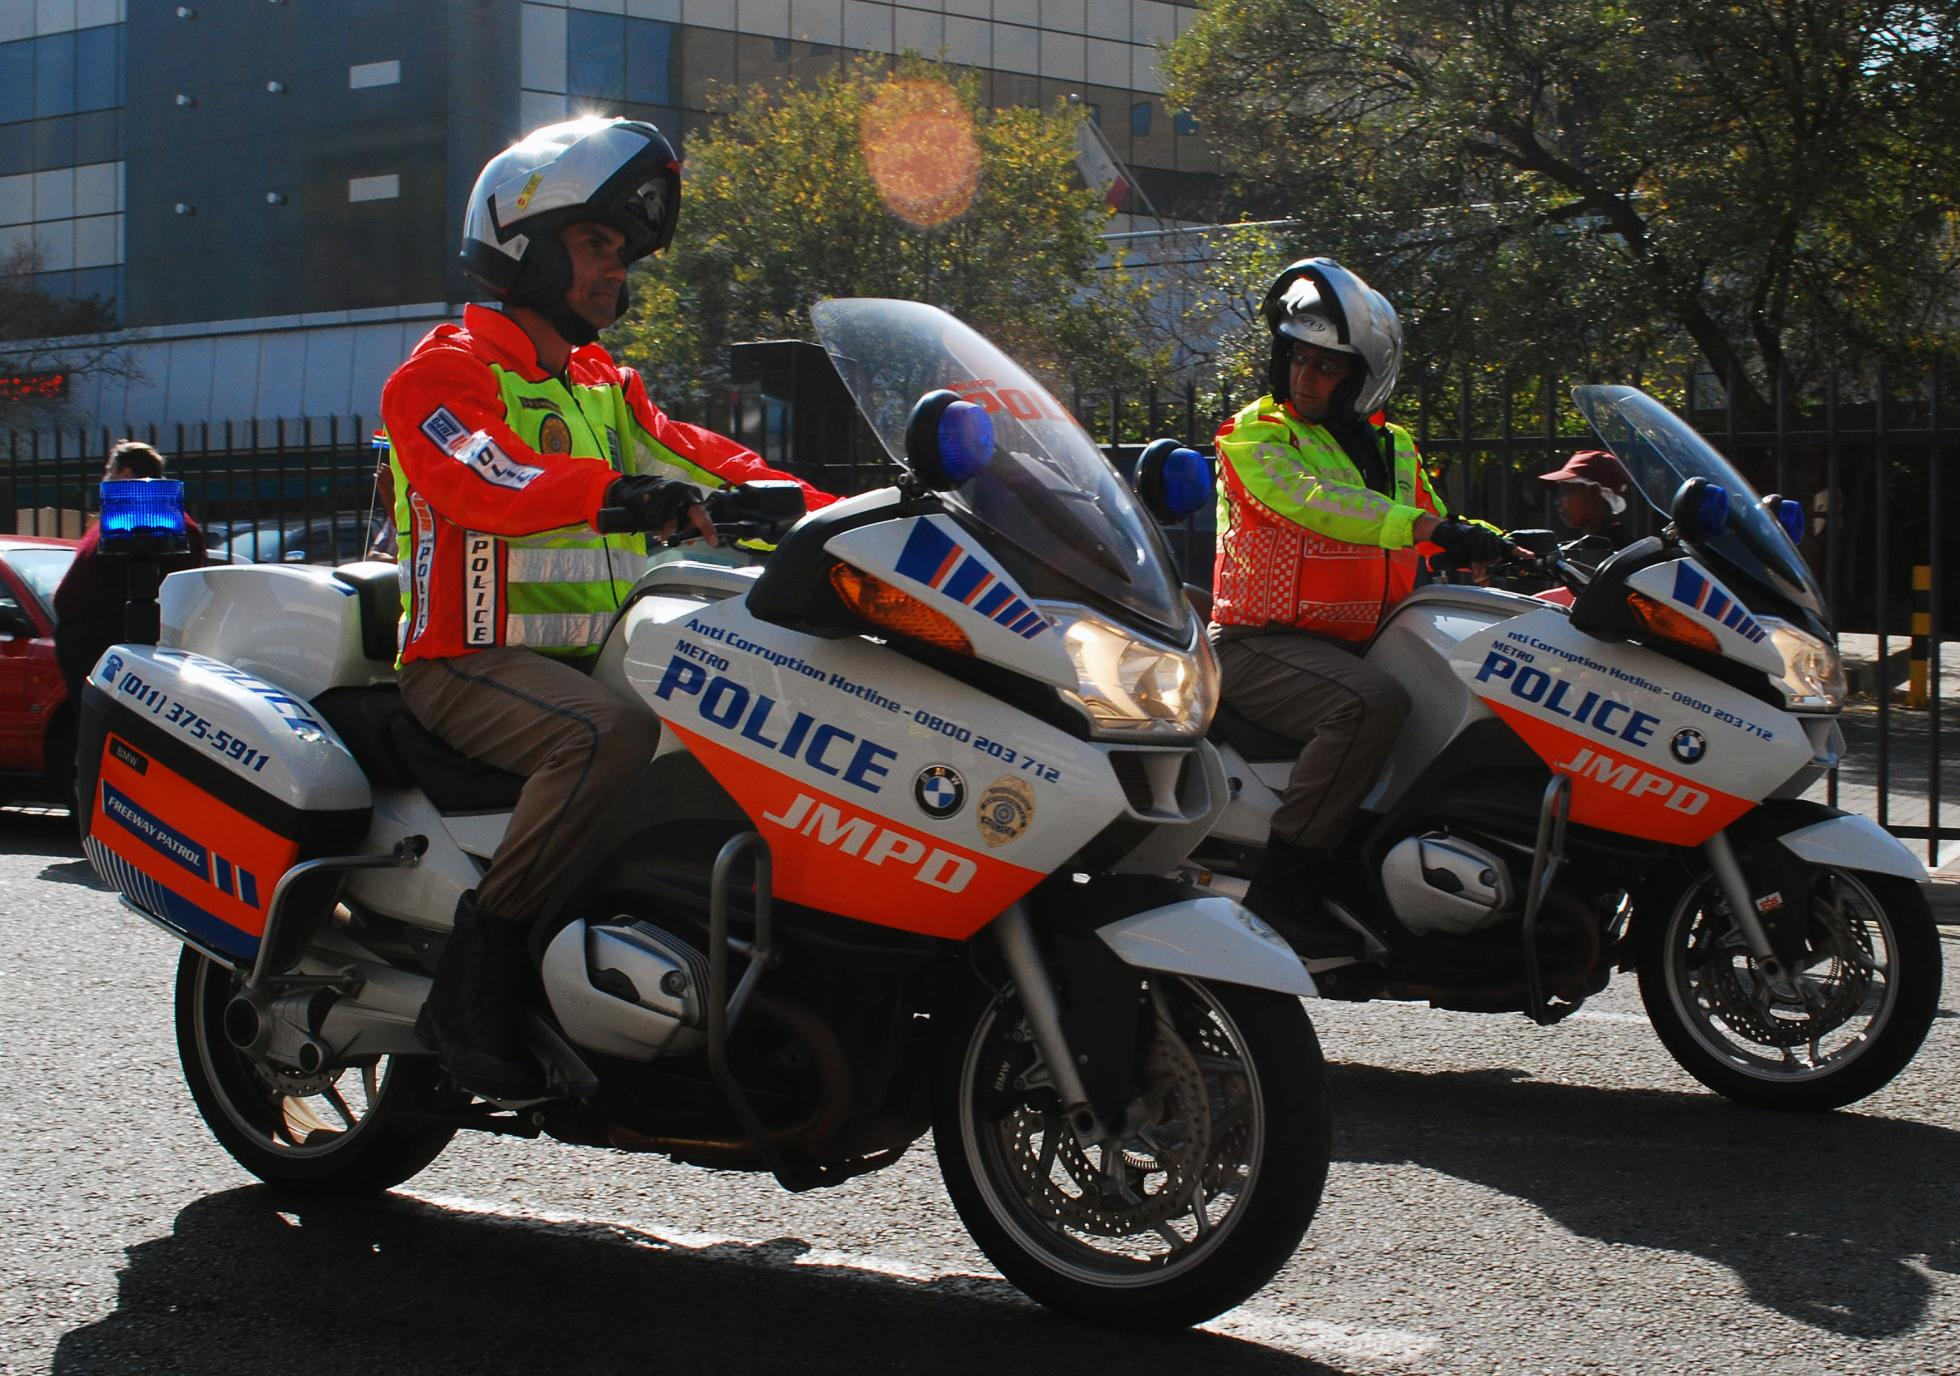 File Police Motorcycles In South Wikimedia